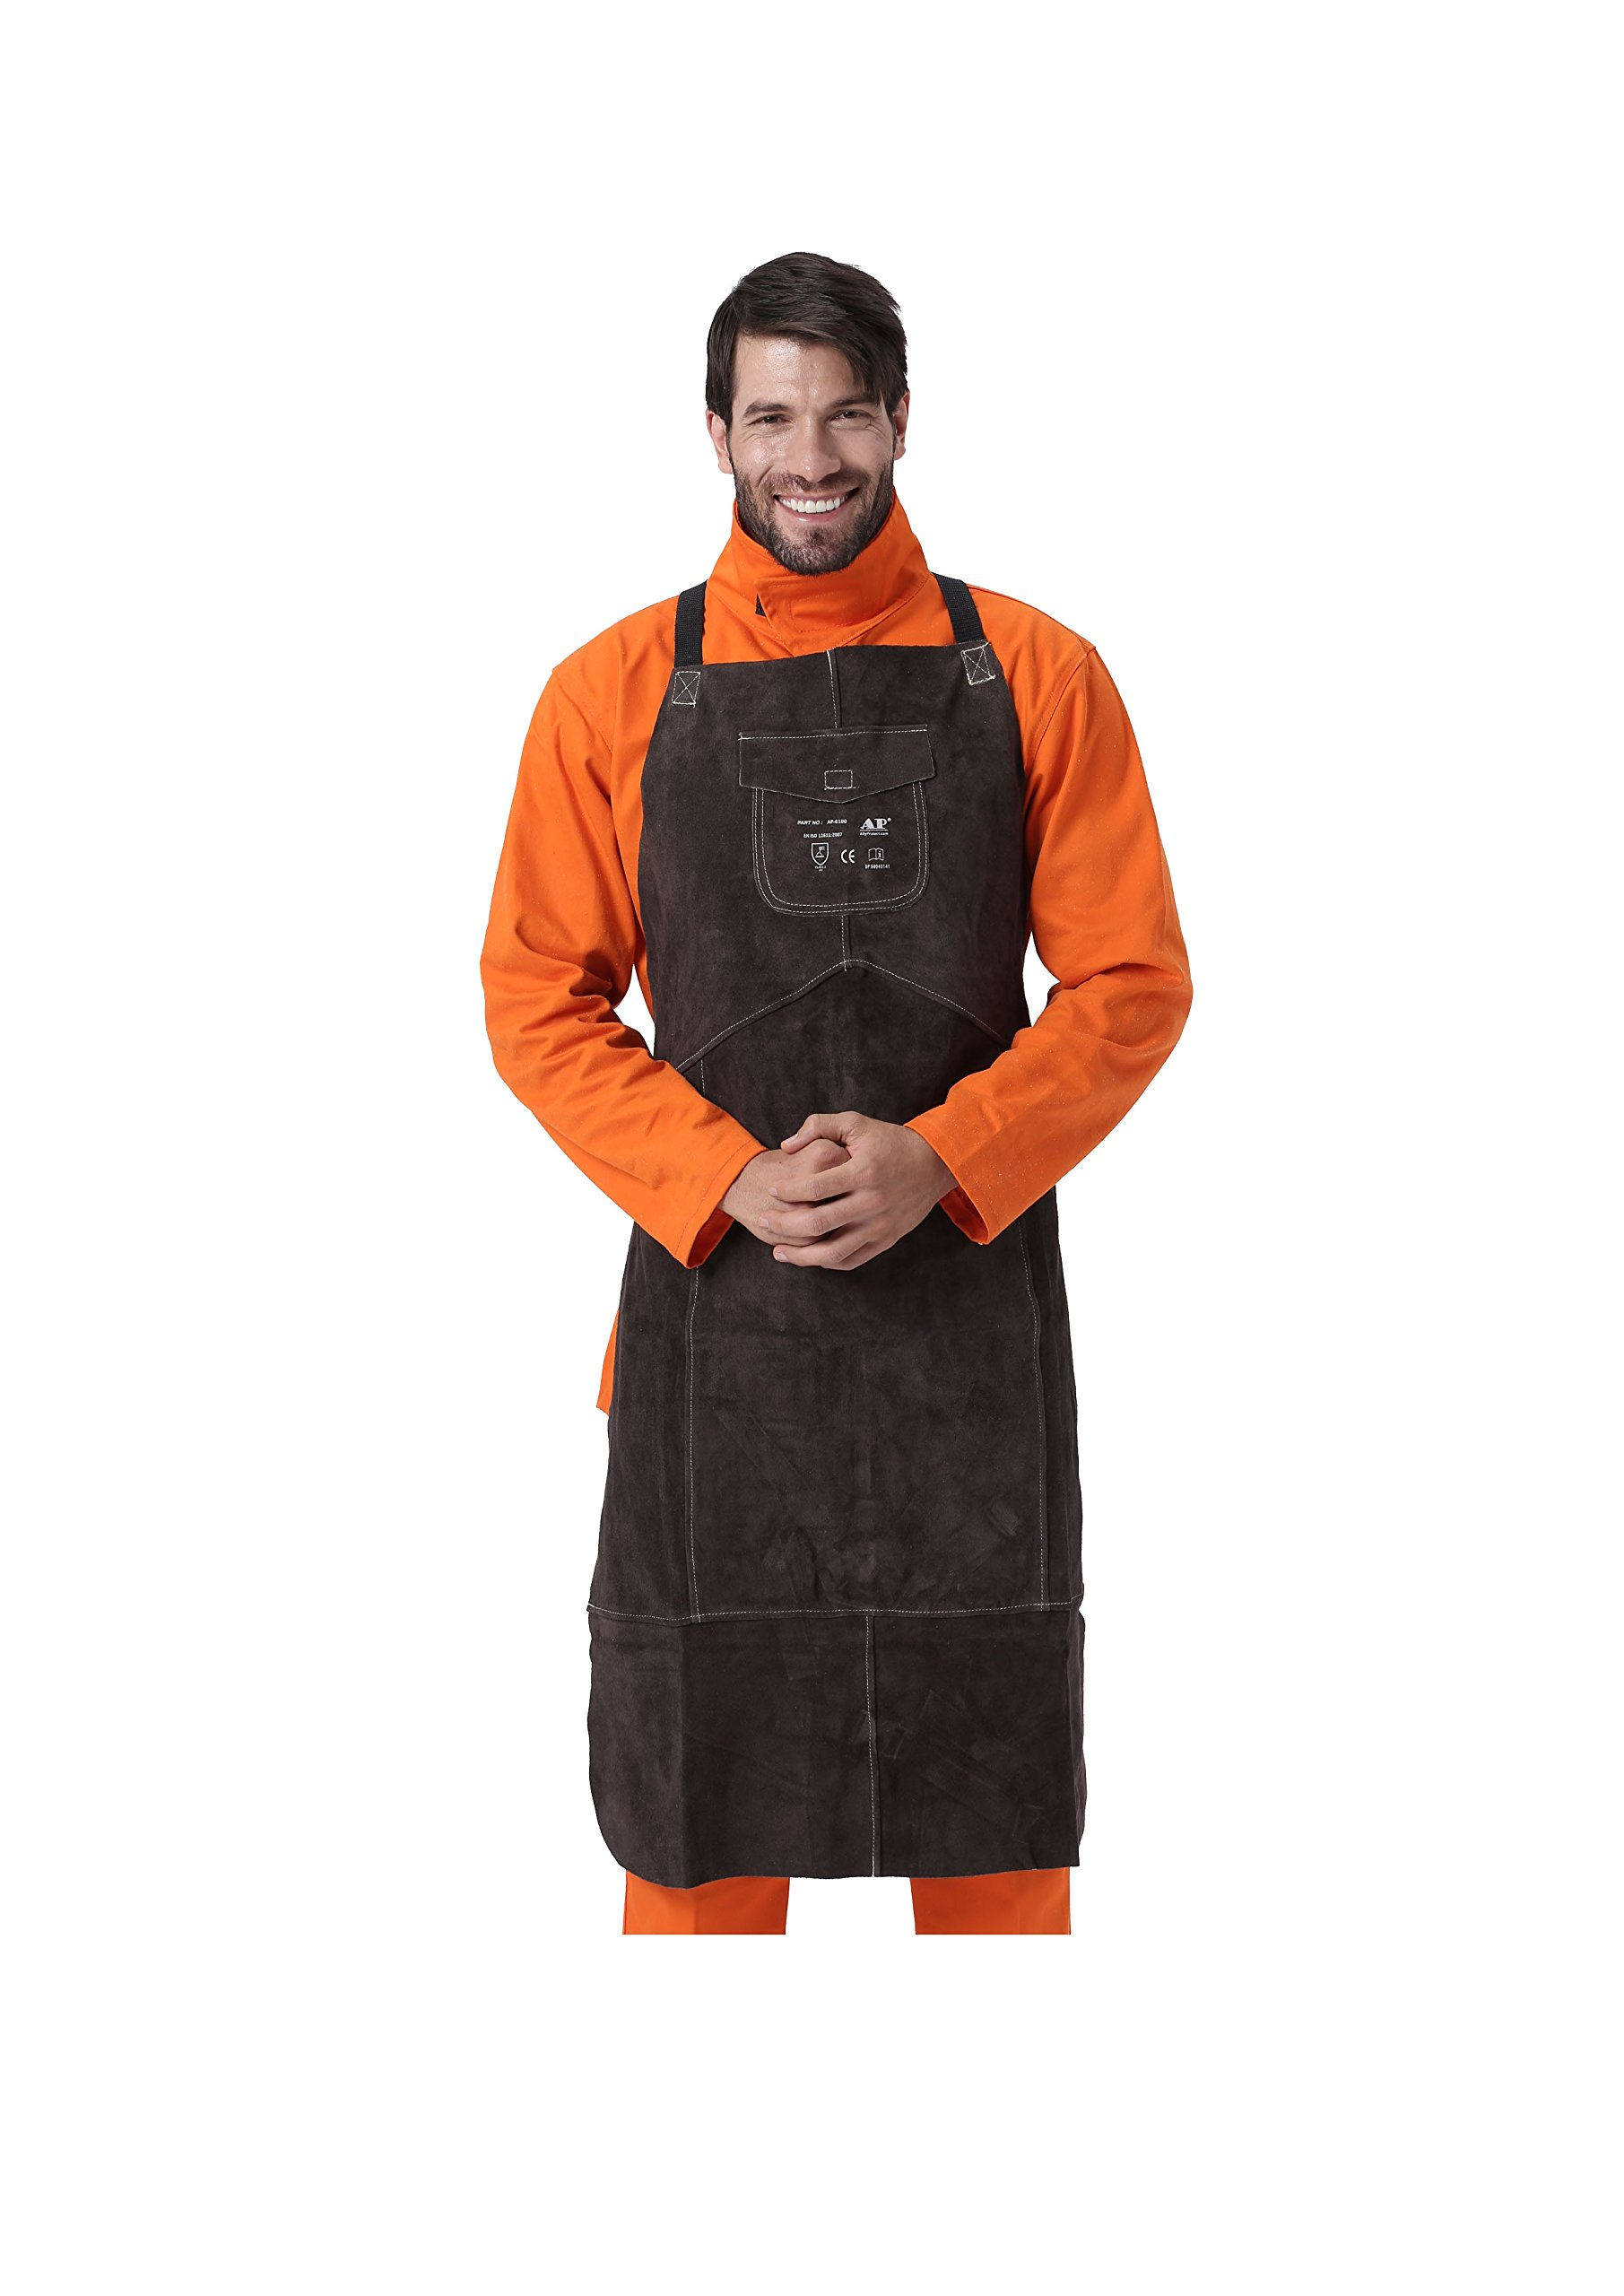 AllyProtect Length 42'' Heat/Flame Resistant Leather Welding Bib Apron with Pocket for Men/Women for Woodwork/Home Improvement/Heavy Duty Work £¨ Brown Color£ by AP ALLYPROTECT.COM (Image #1)